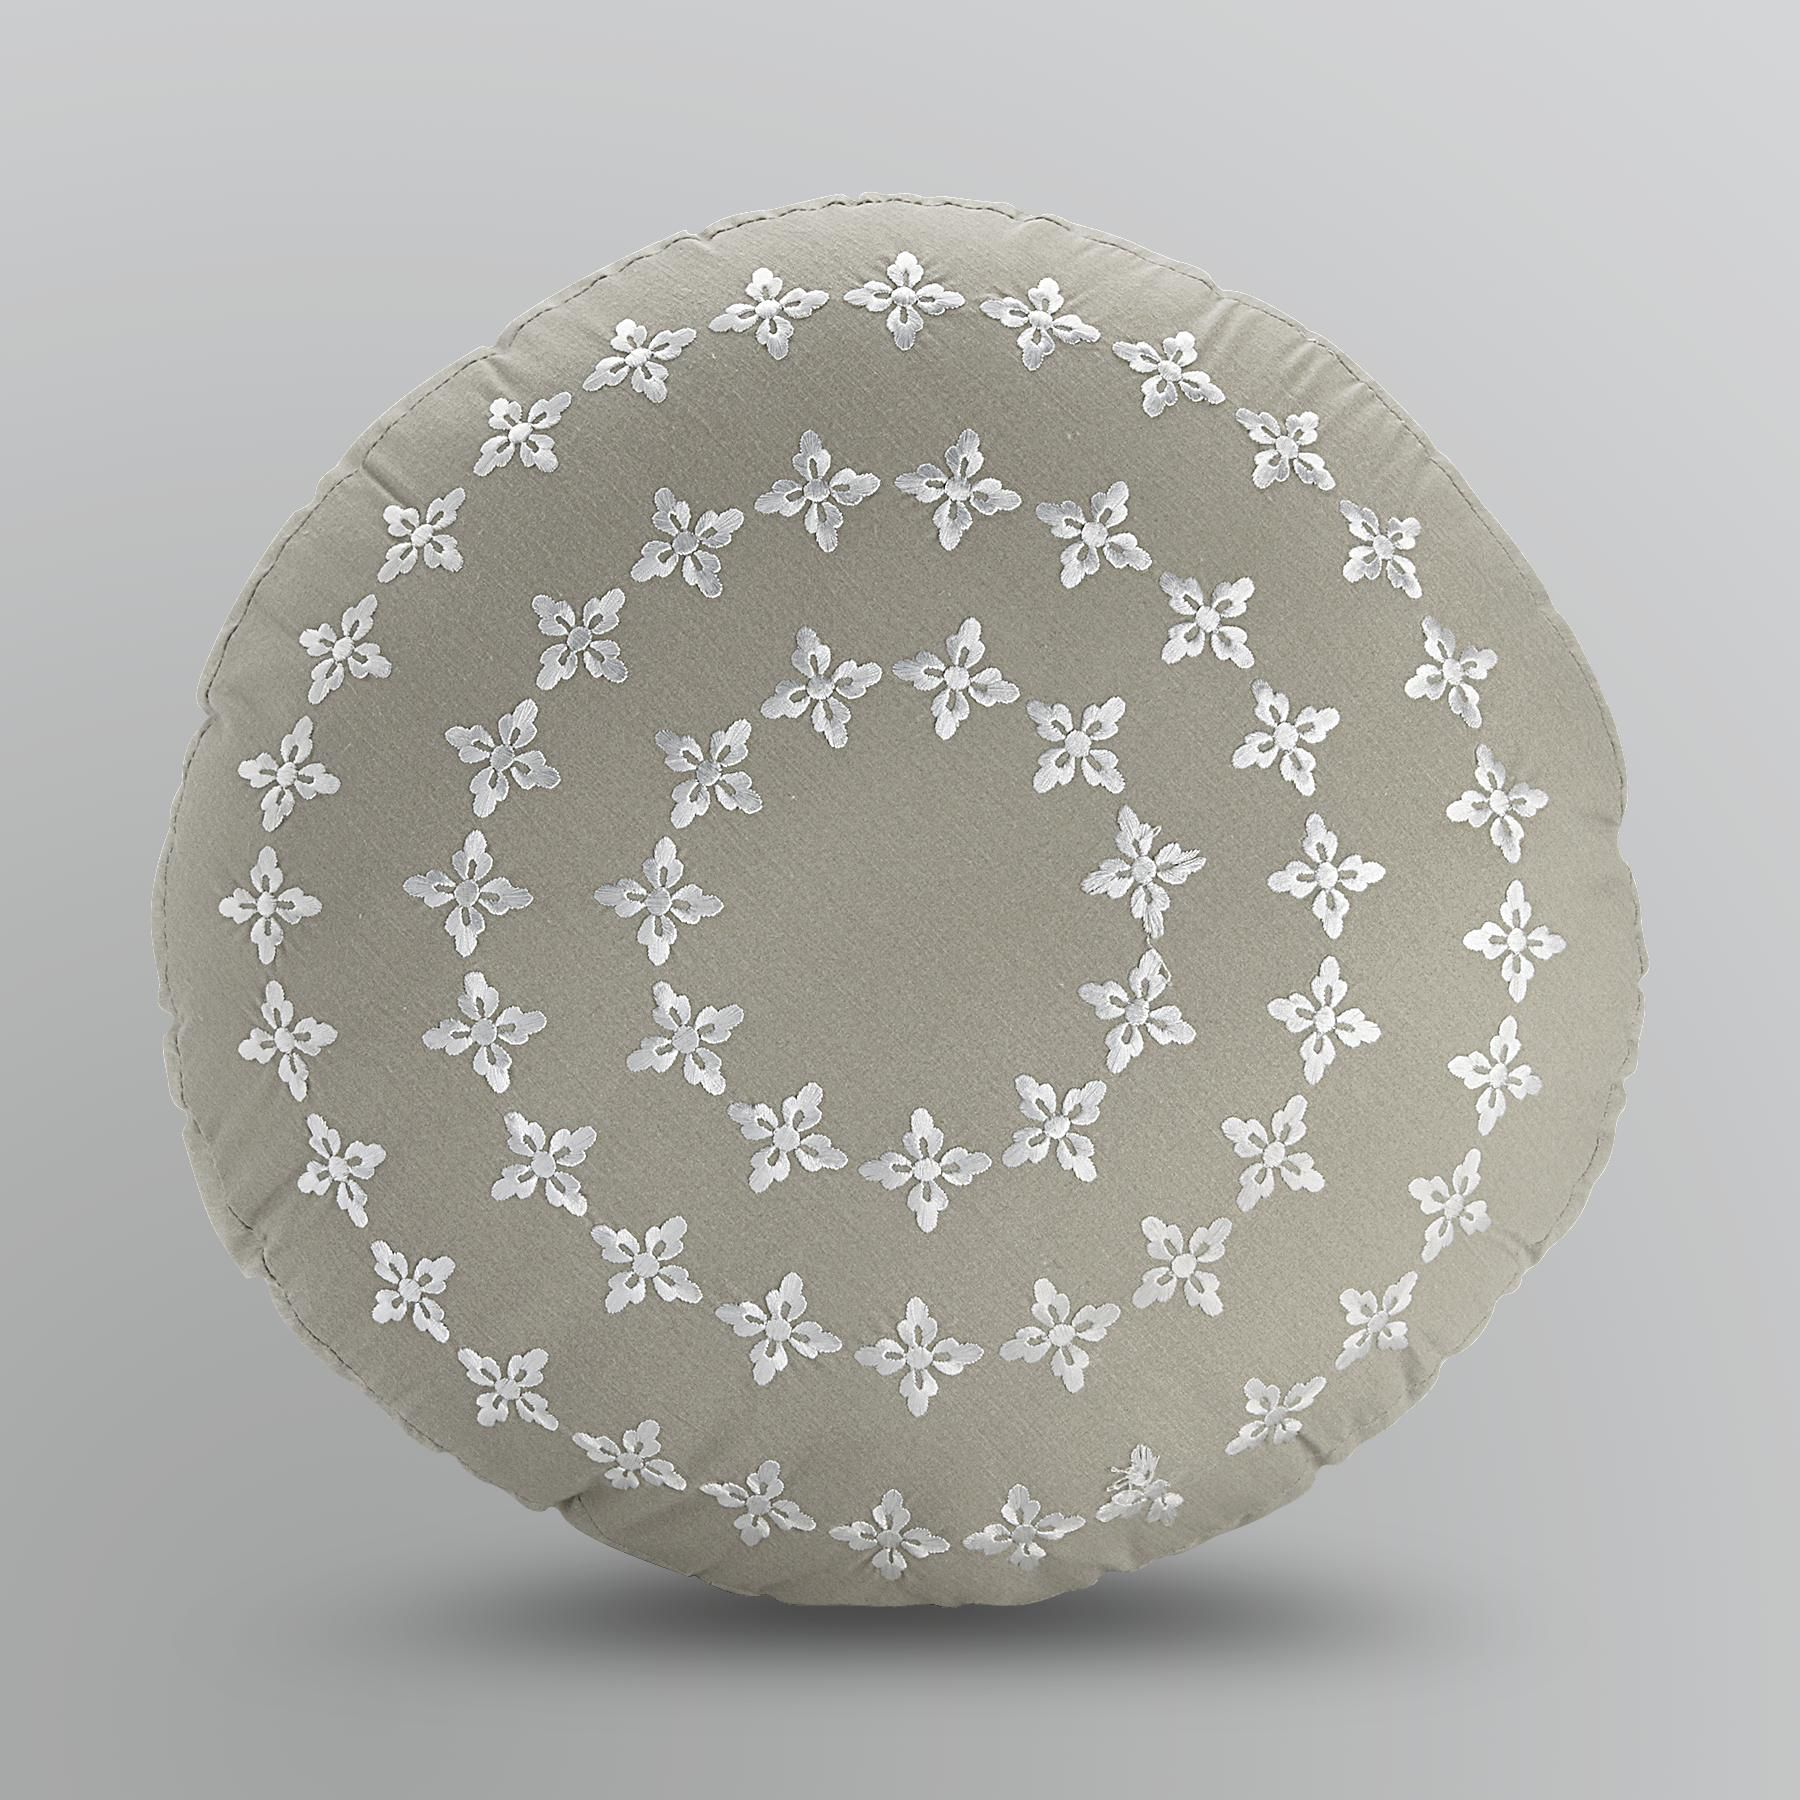 Round Gray Embroidered Decorative Pillow